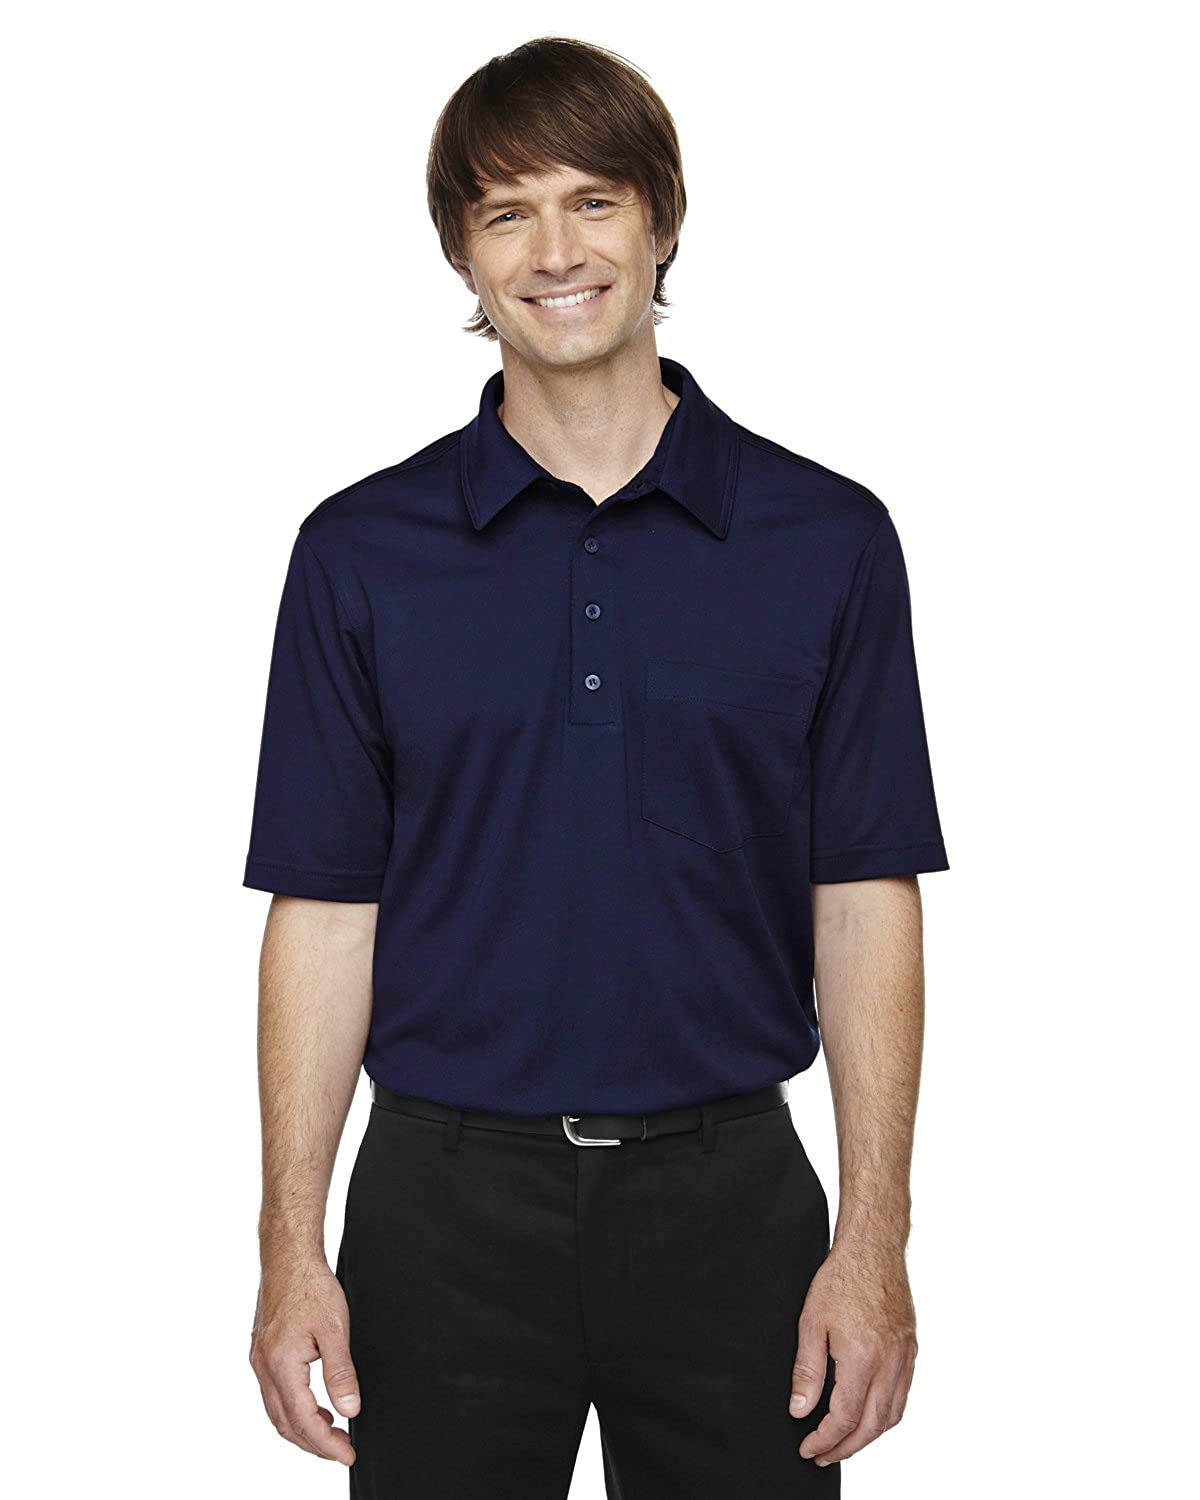 New/ Shift Mens/ SNAG Protection Plus Polo Ash City Extreme 85114